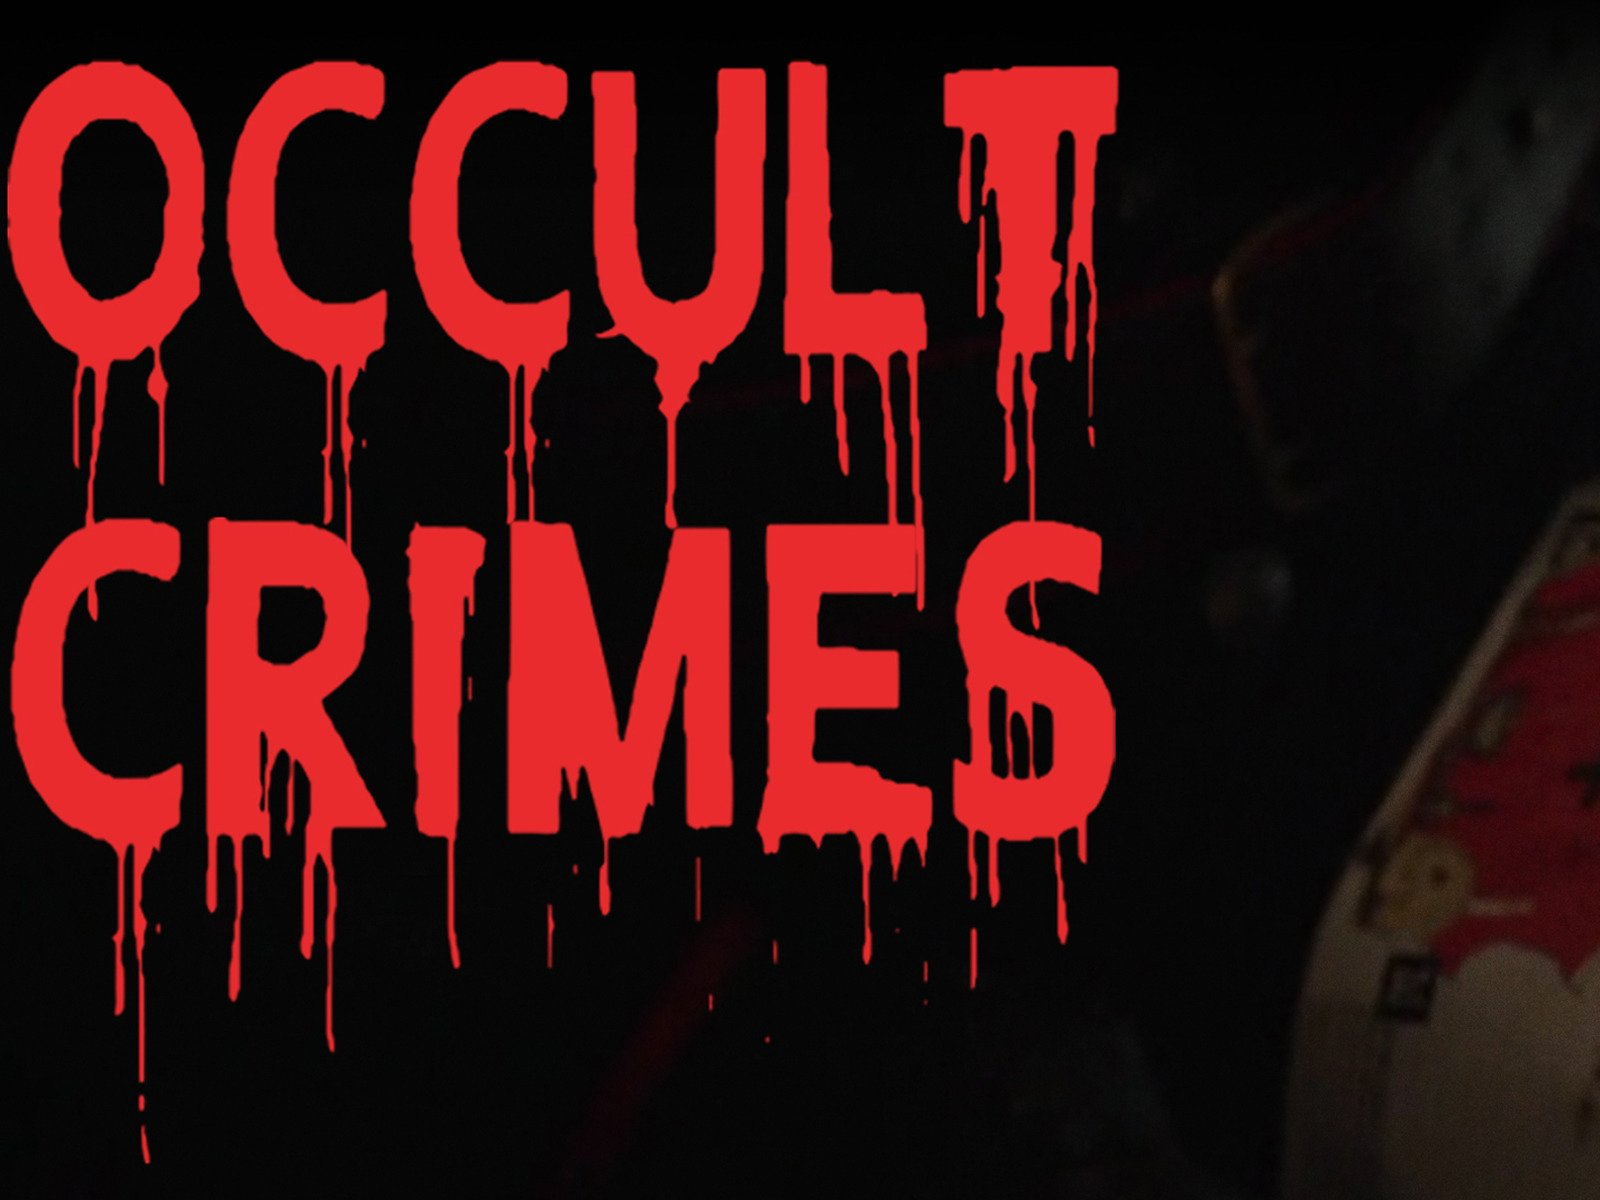 Occult Crimes - Season 1